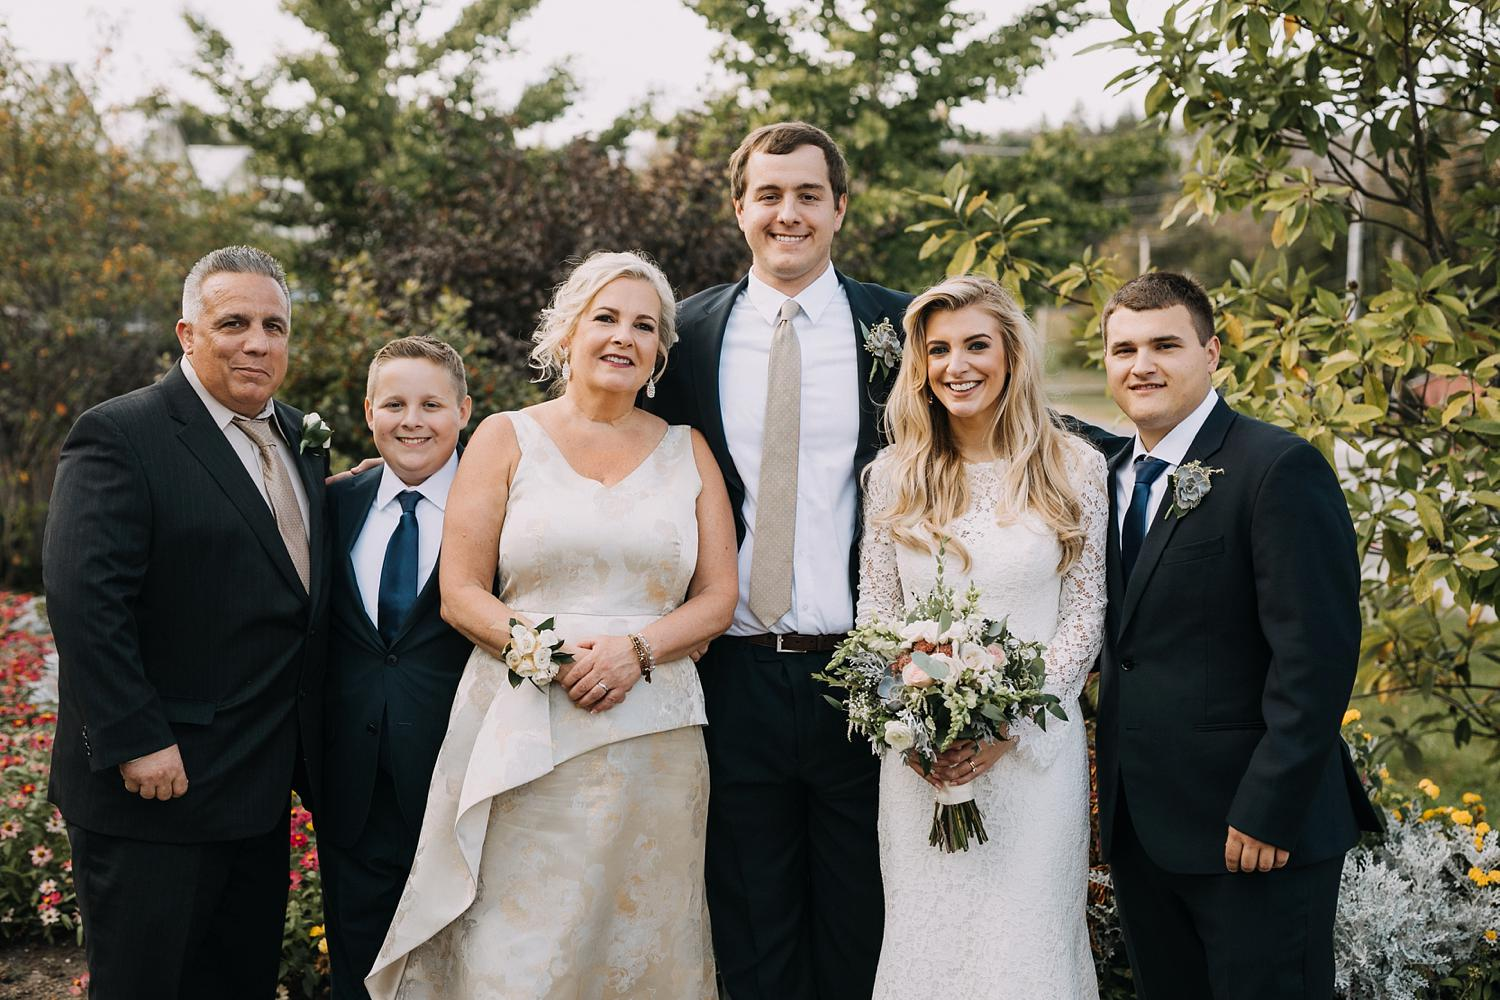 Conservatory Sussex County Fairgrounds Augusta NJ Wedding Photography Steph Massaro Family Portraits